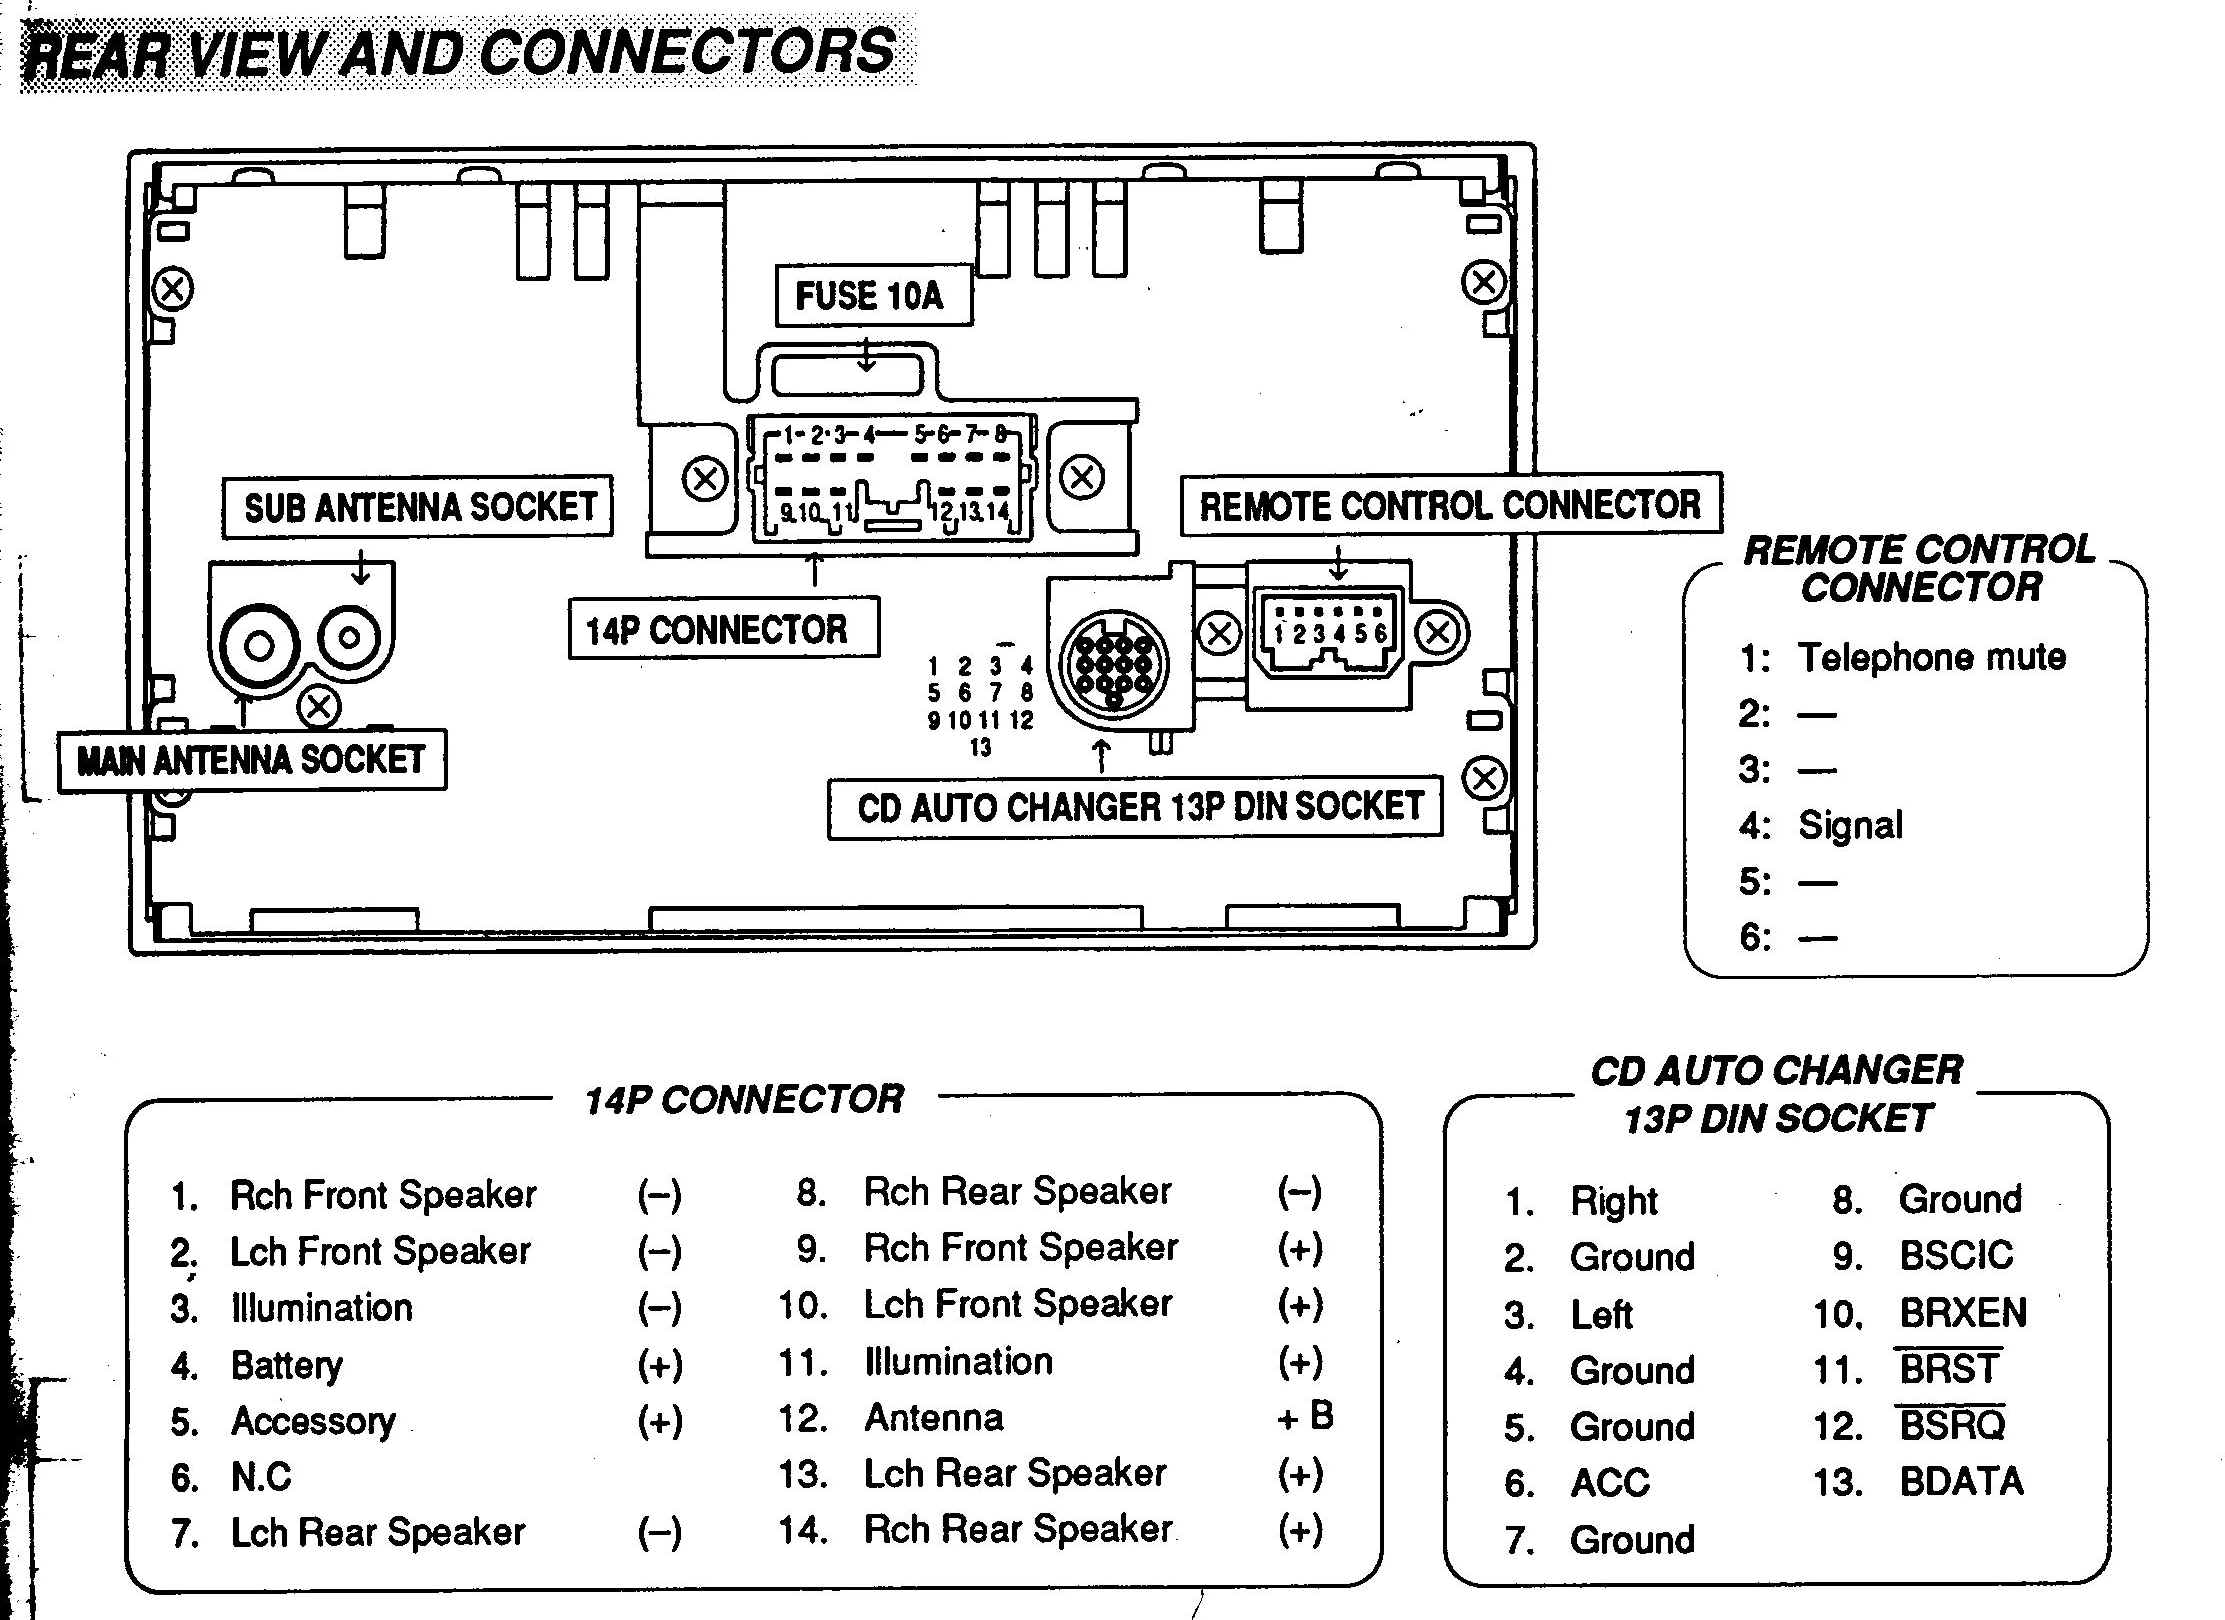 gmc bose stereo wiring diagram gmc wiring diagrams online car stereo repair wire harness codes and diagrams